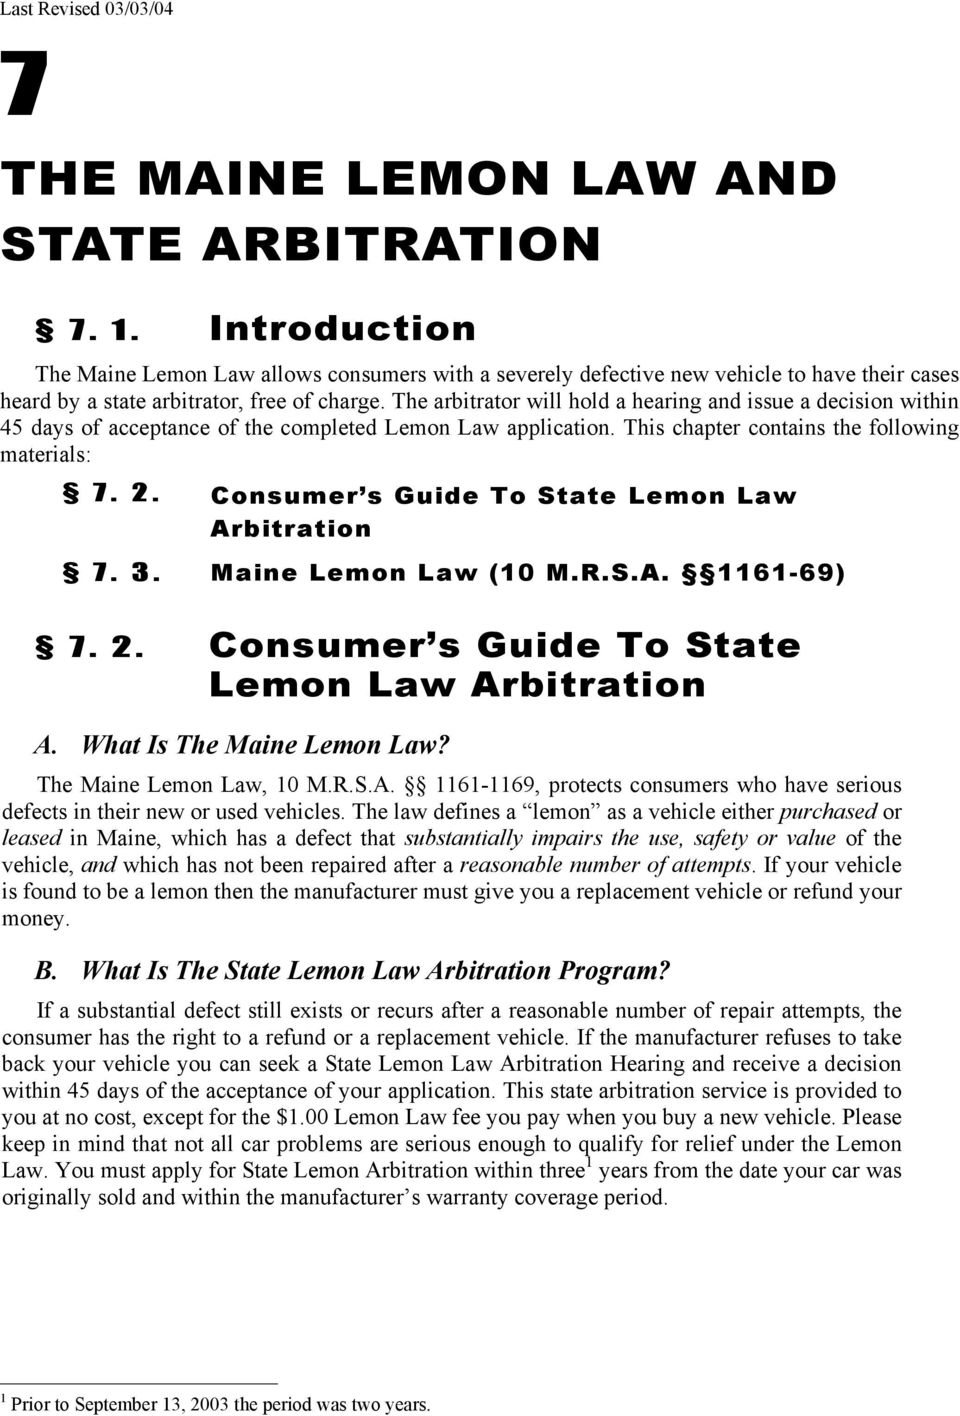 The arbitrator will hold a hearing and issue a decision within 45 days of acceptance of the completed Lemon Law application. This chapter contains the following materials: 7. 2.